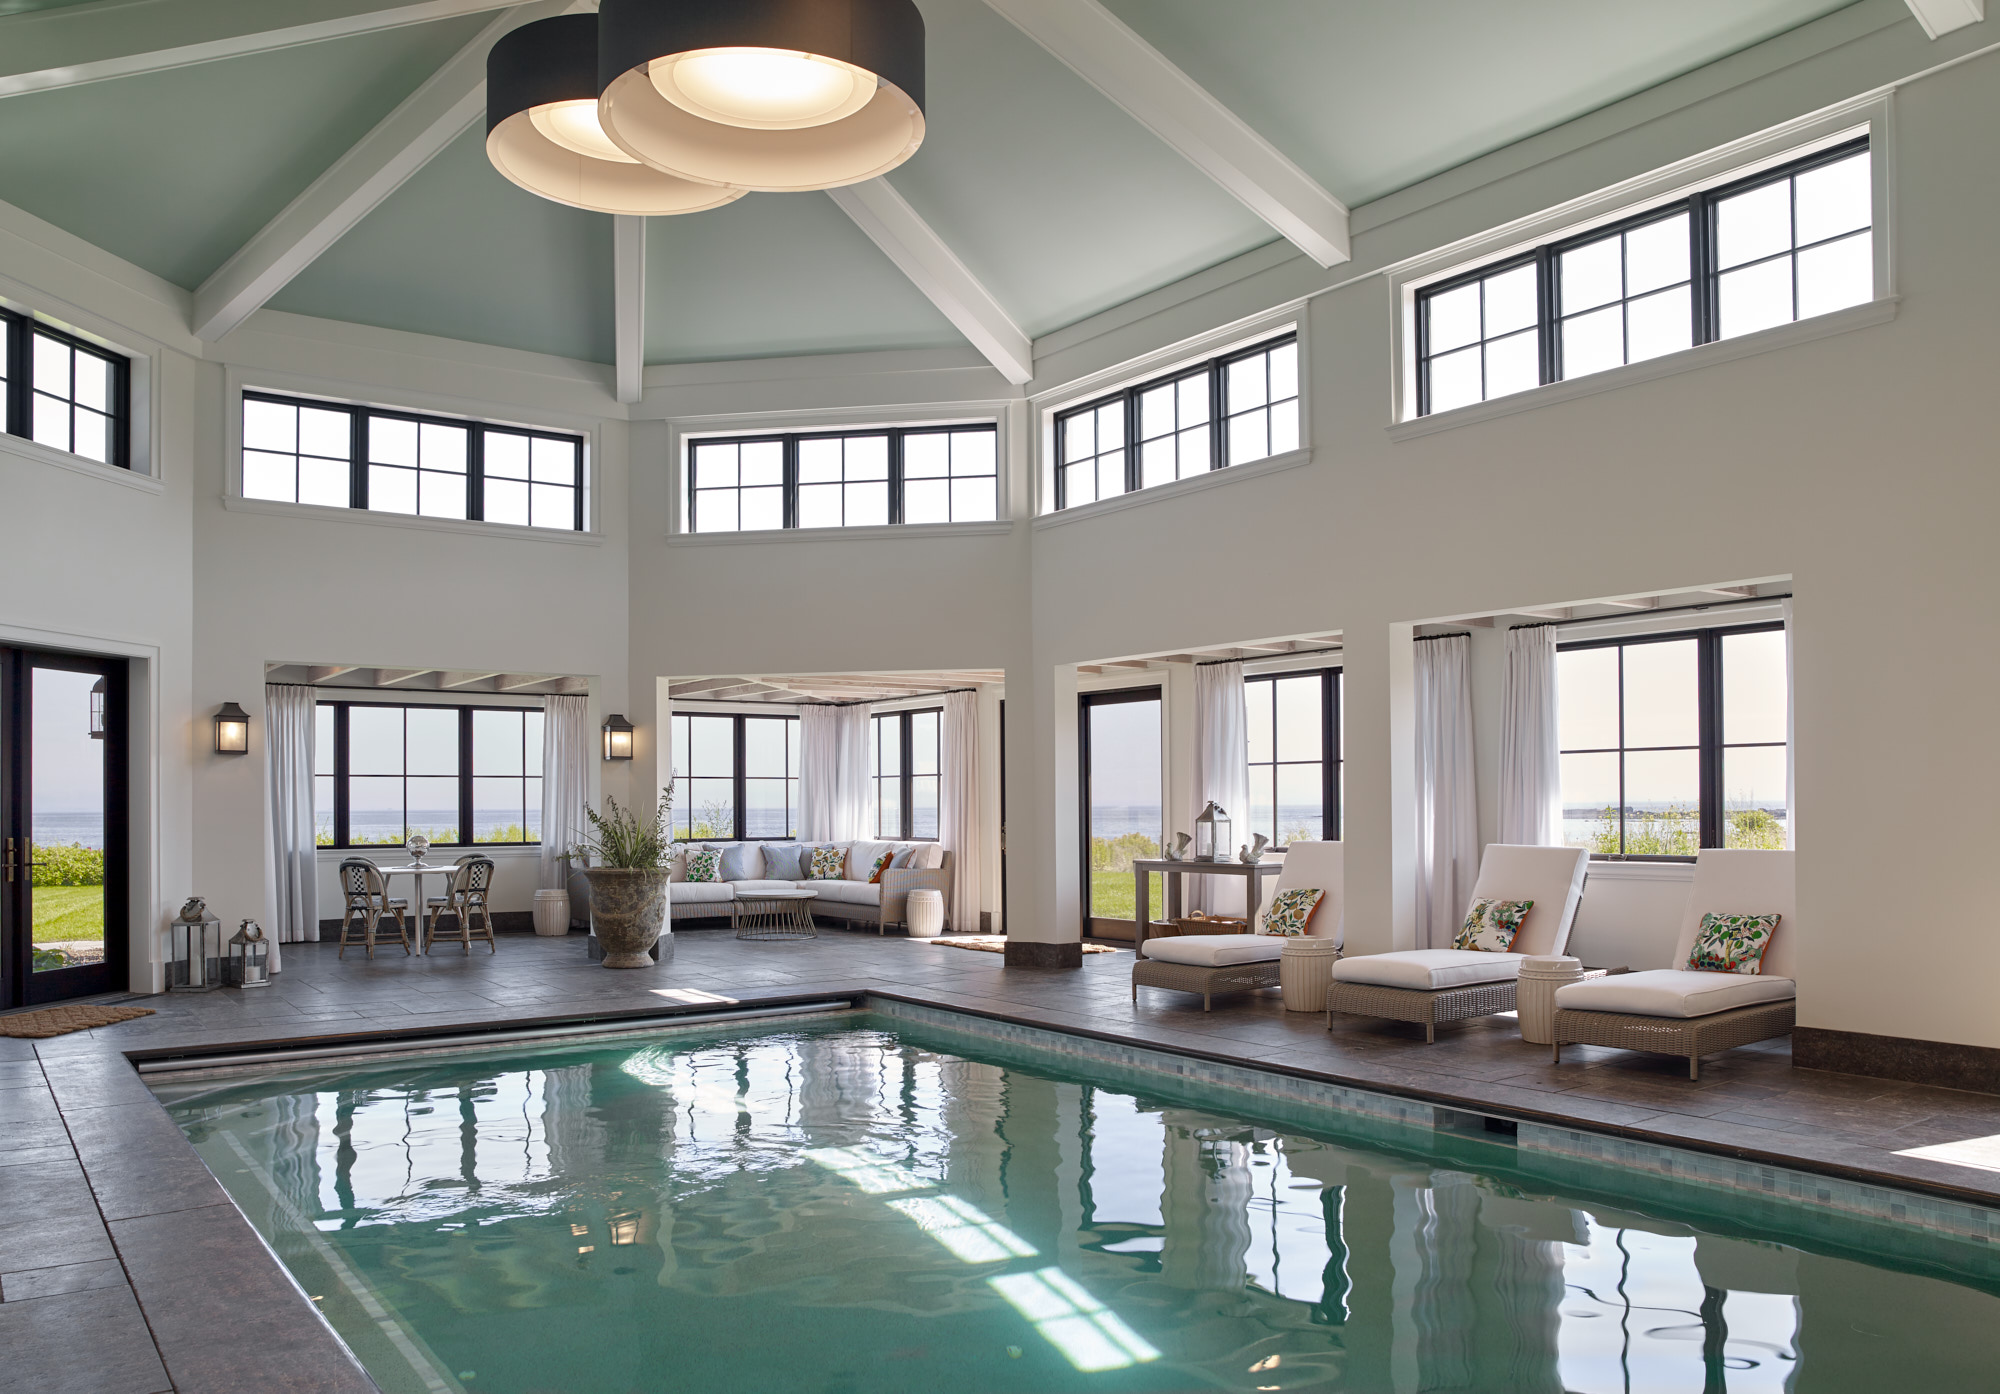 Modern indoor pool room with natural lighting and a cathedral ceiling.